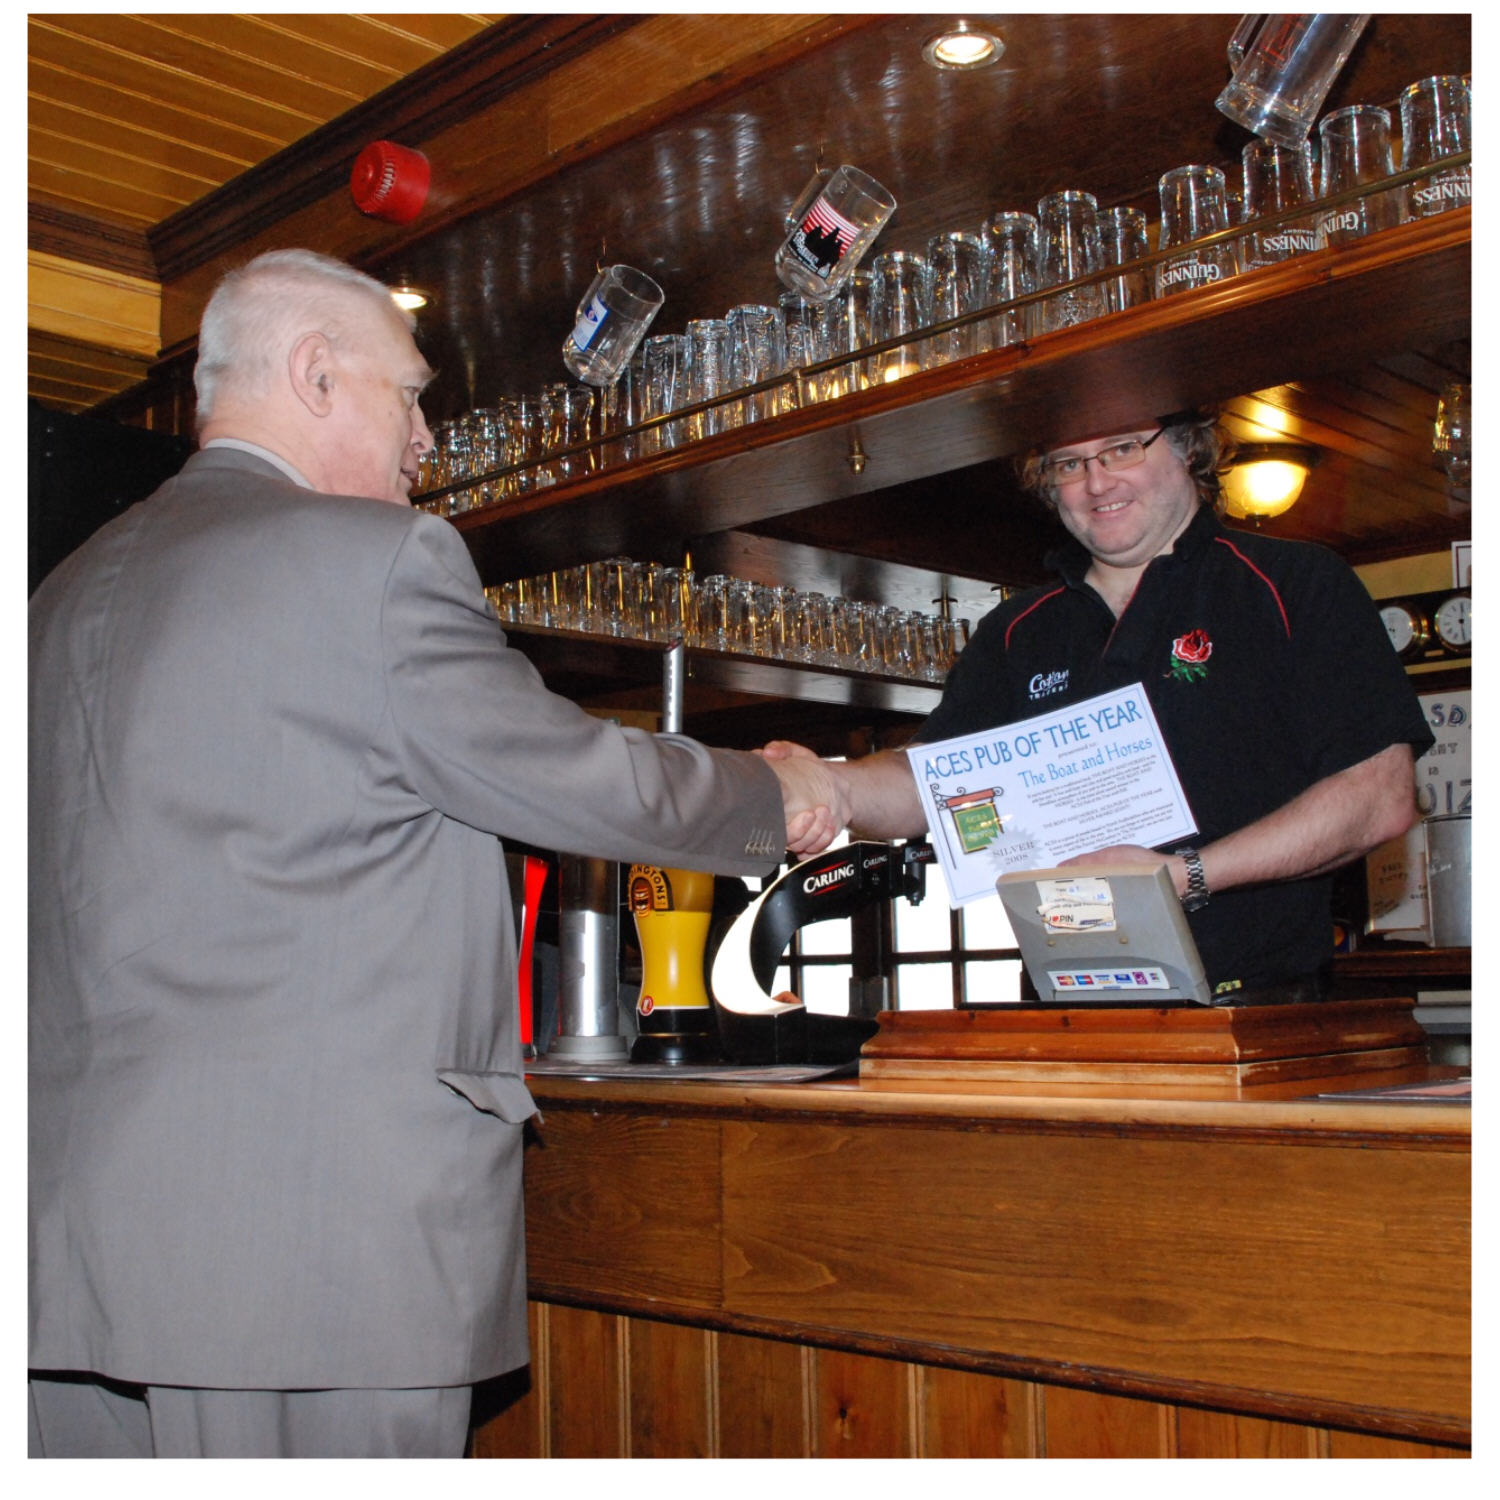 ACES Pub of the Year Award 2008 - Silver Award